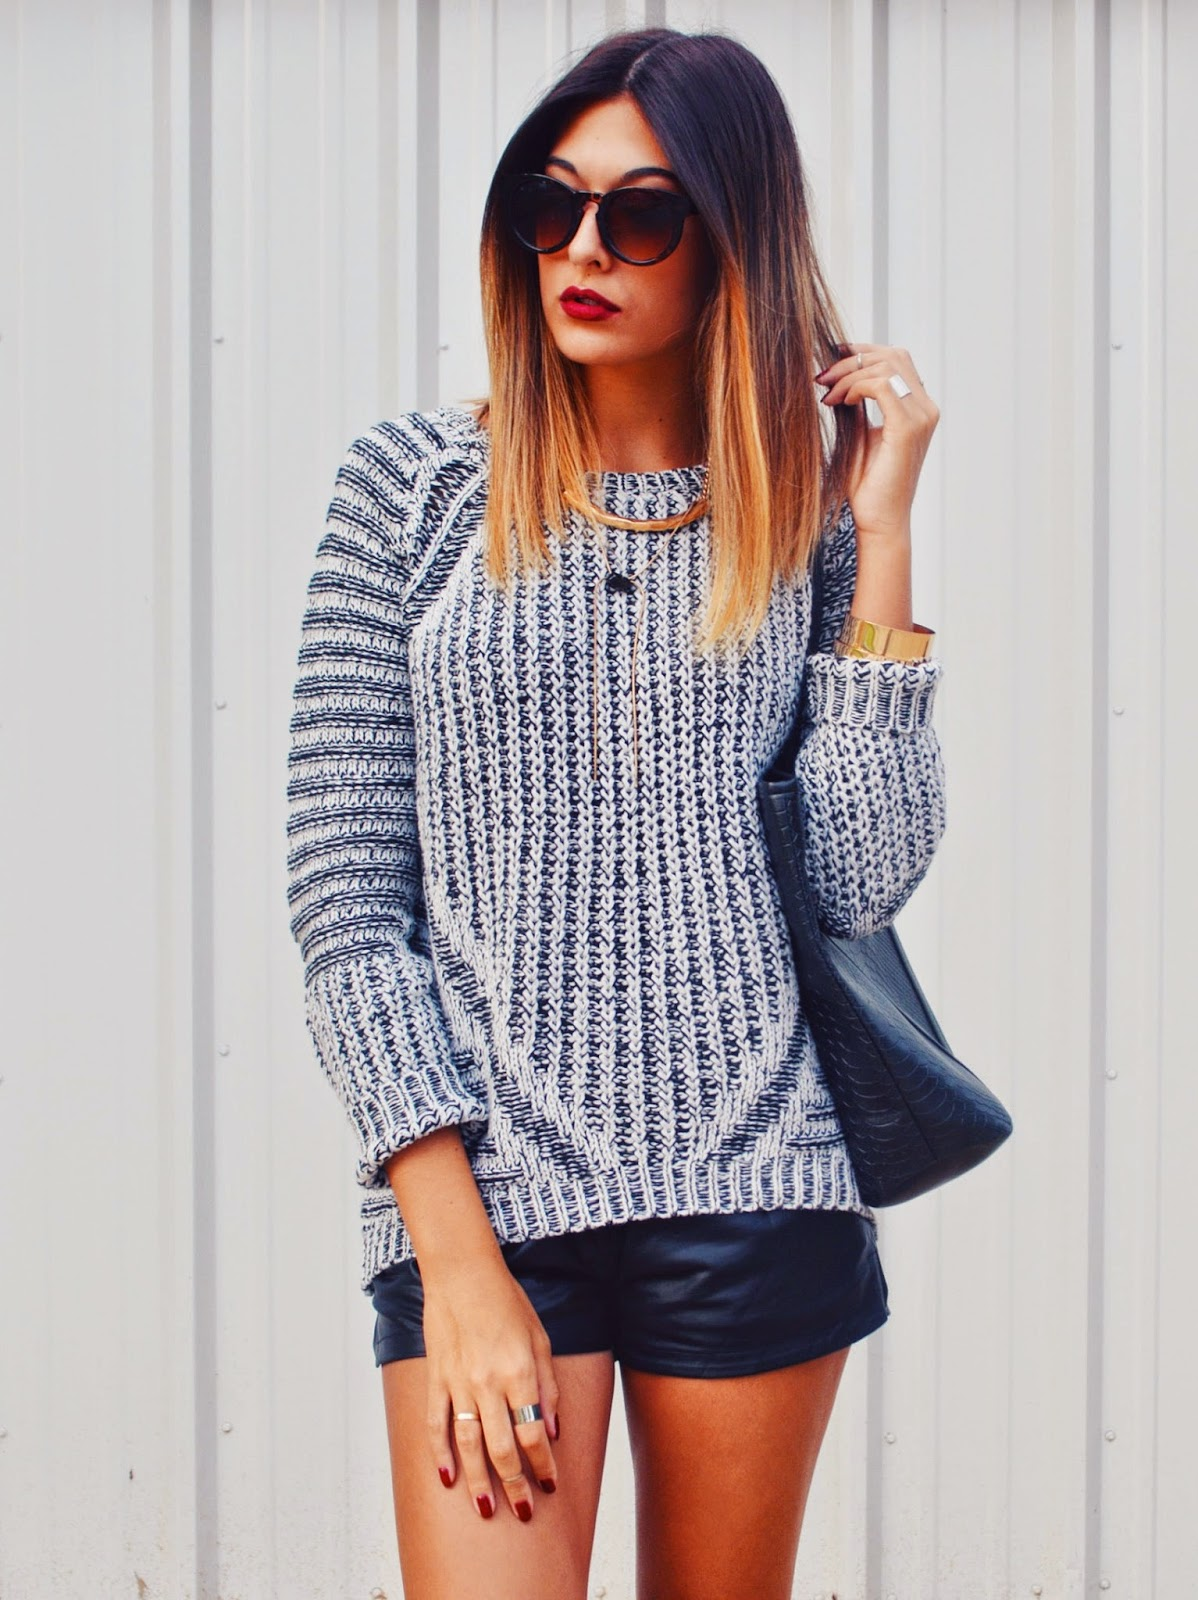 Danielle DeHardt is wearing a grey knitwear sweater from Dex Clothing